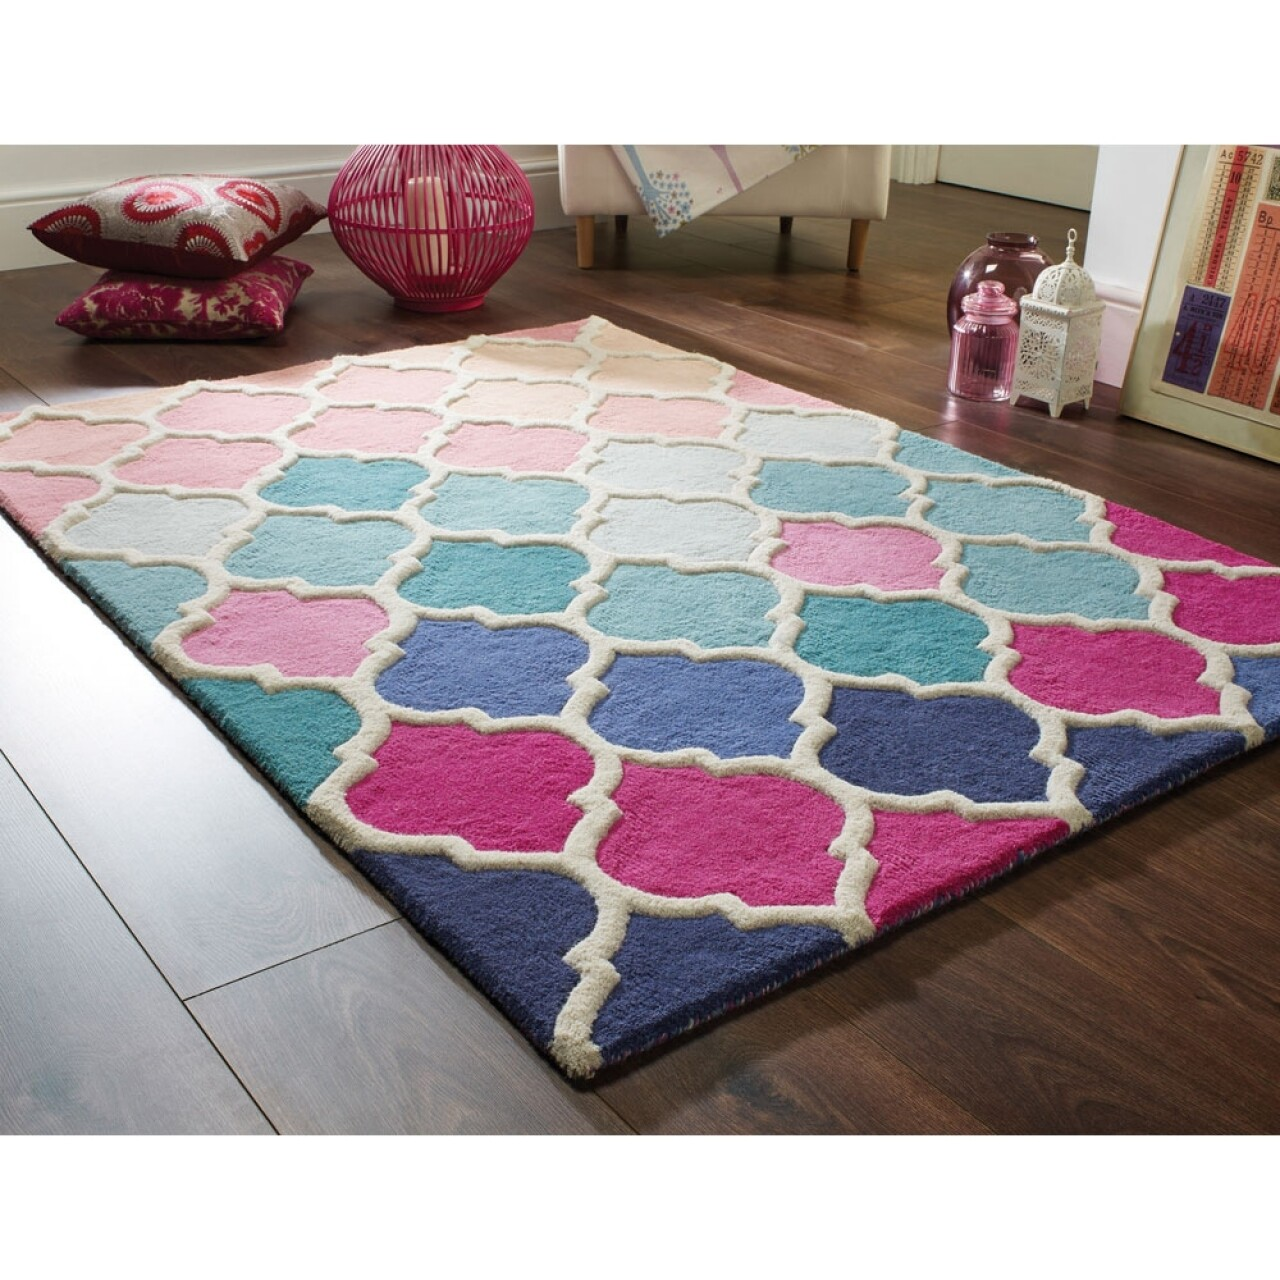 Covor Illusion Rosella Pink/Blue, Flair Rugs, 120 x 170 cm, 100% lana, multicolor